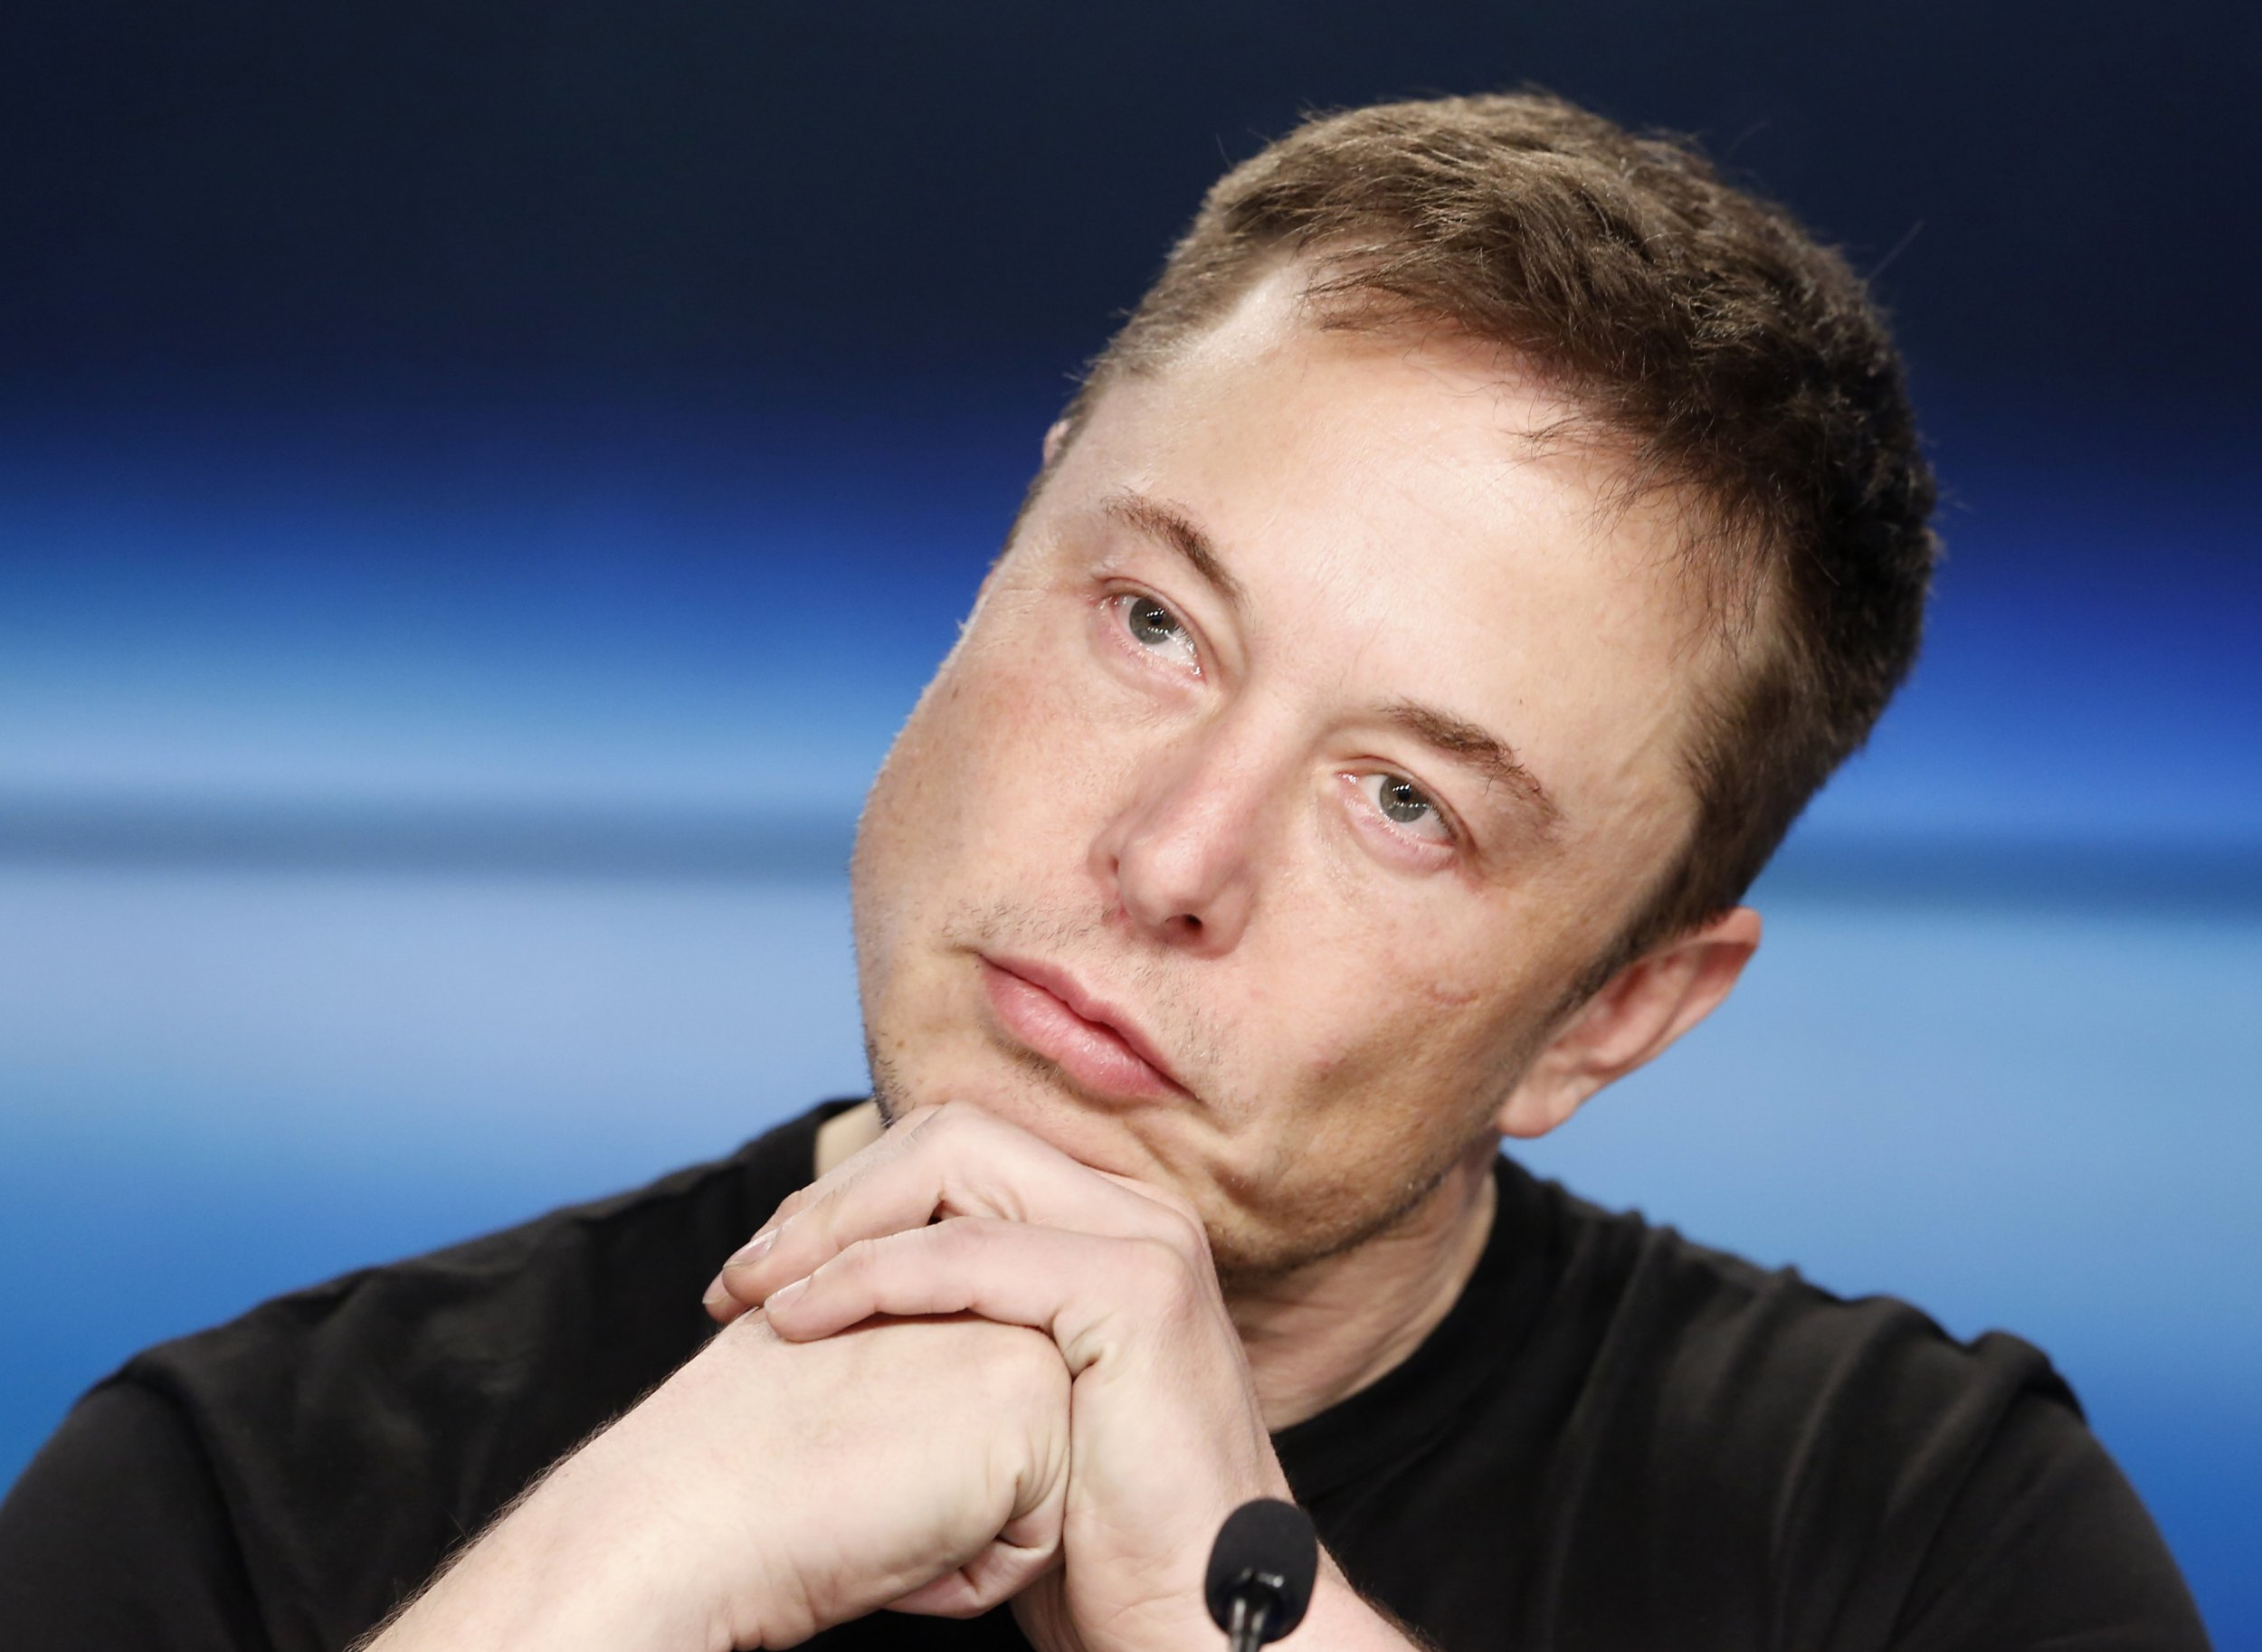 Tesla boss Elon Musk just made an expensive but hilarious mistake